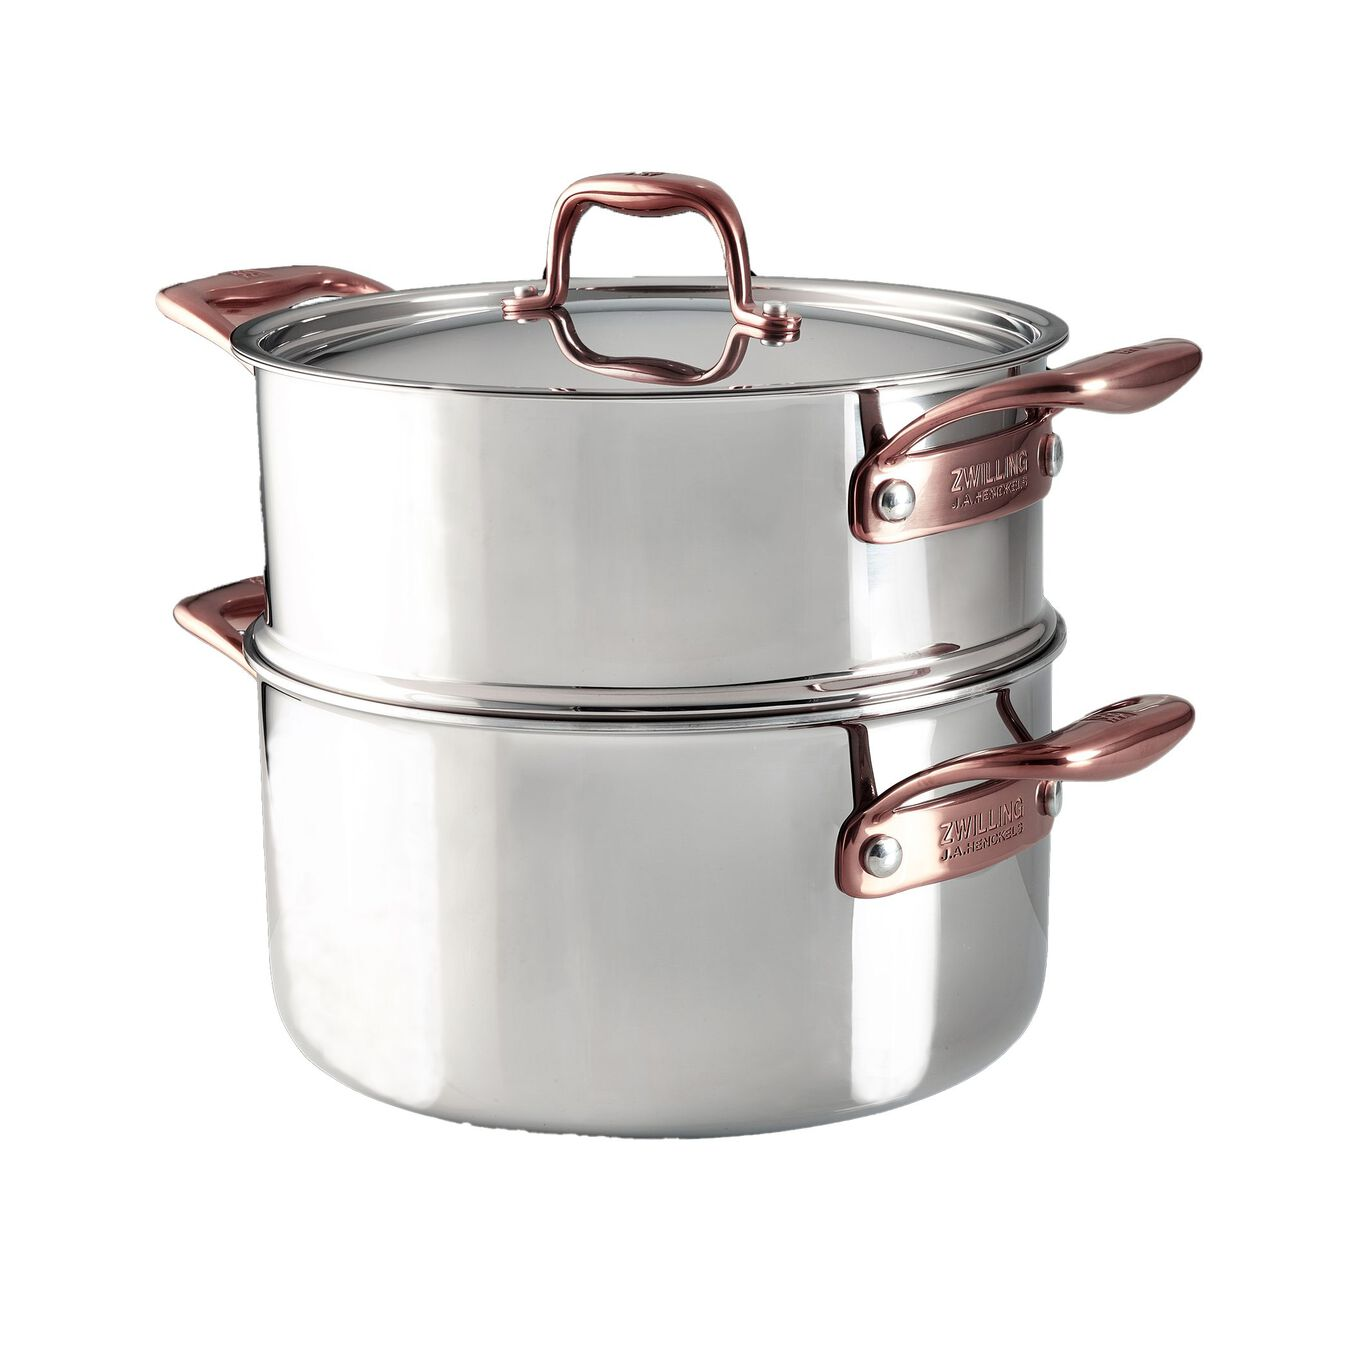 10-pcs 18/10 Stainless Steel Ensemble de casseroles et poêles,,large 7